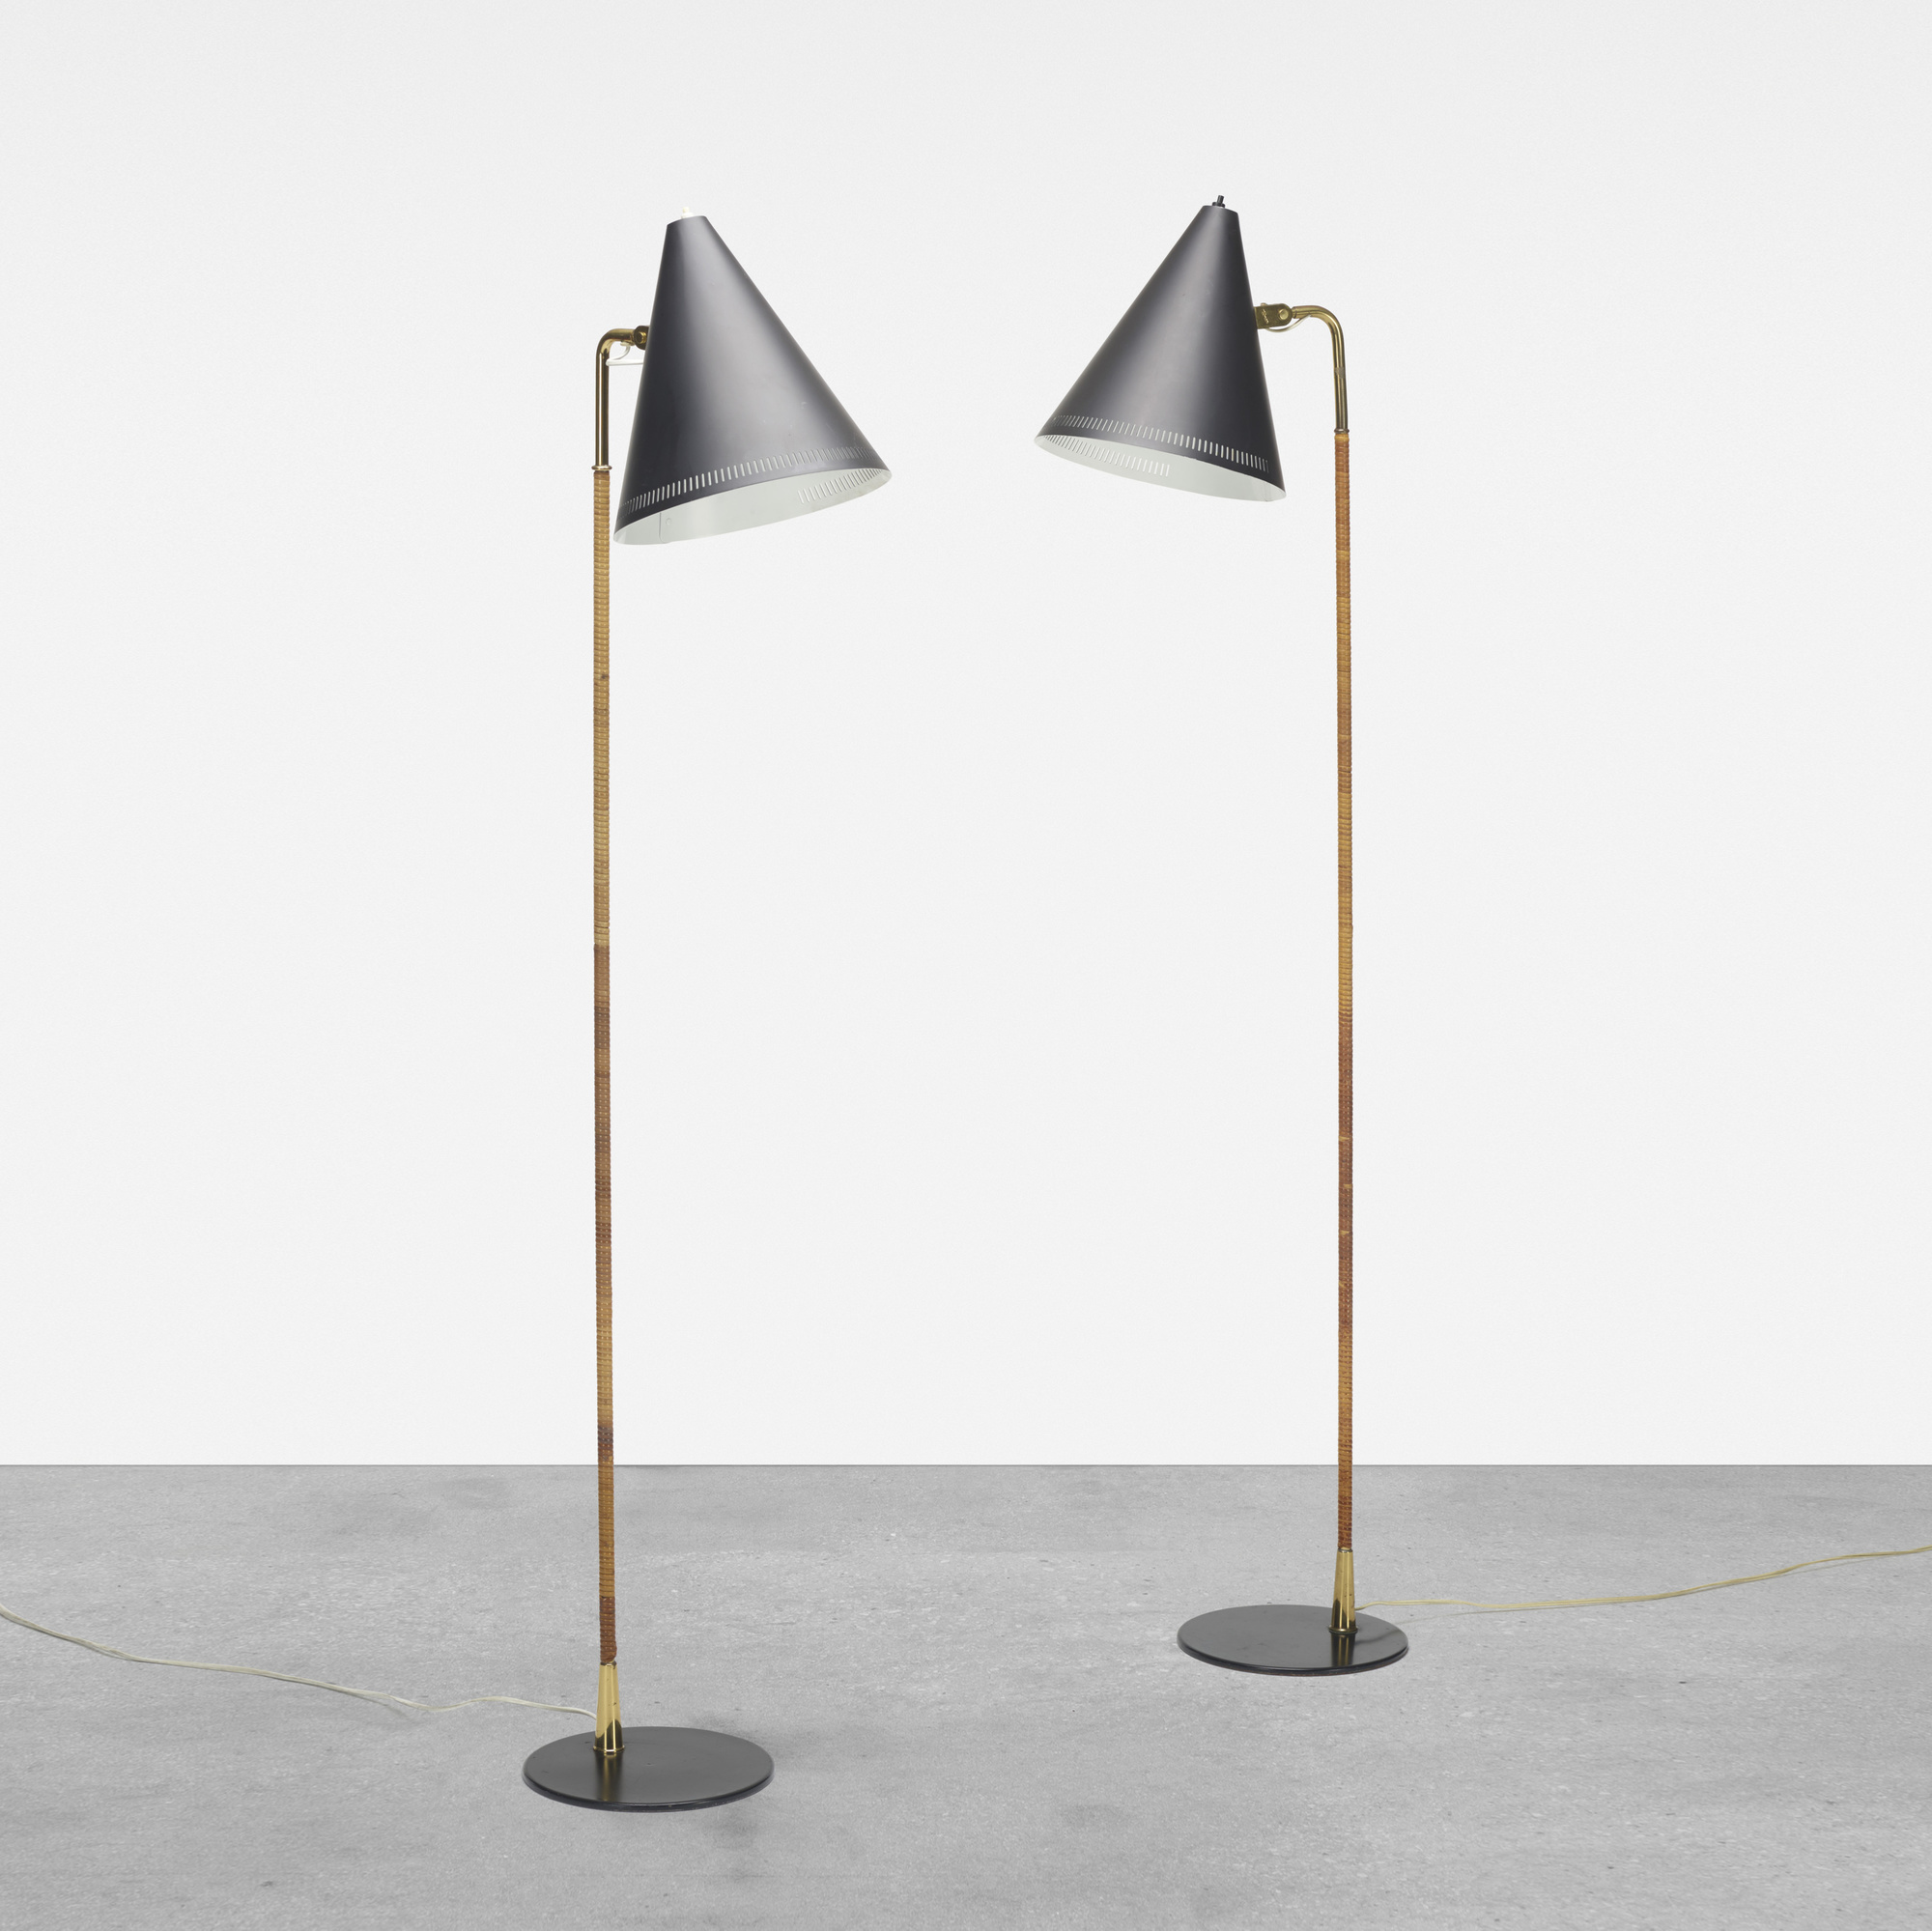 159: Paavo Tynell / floor lamps, pair (1 of 3)